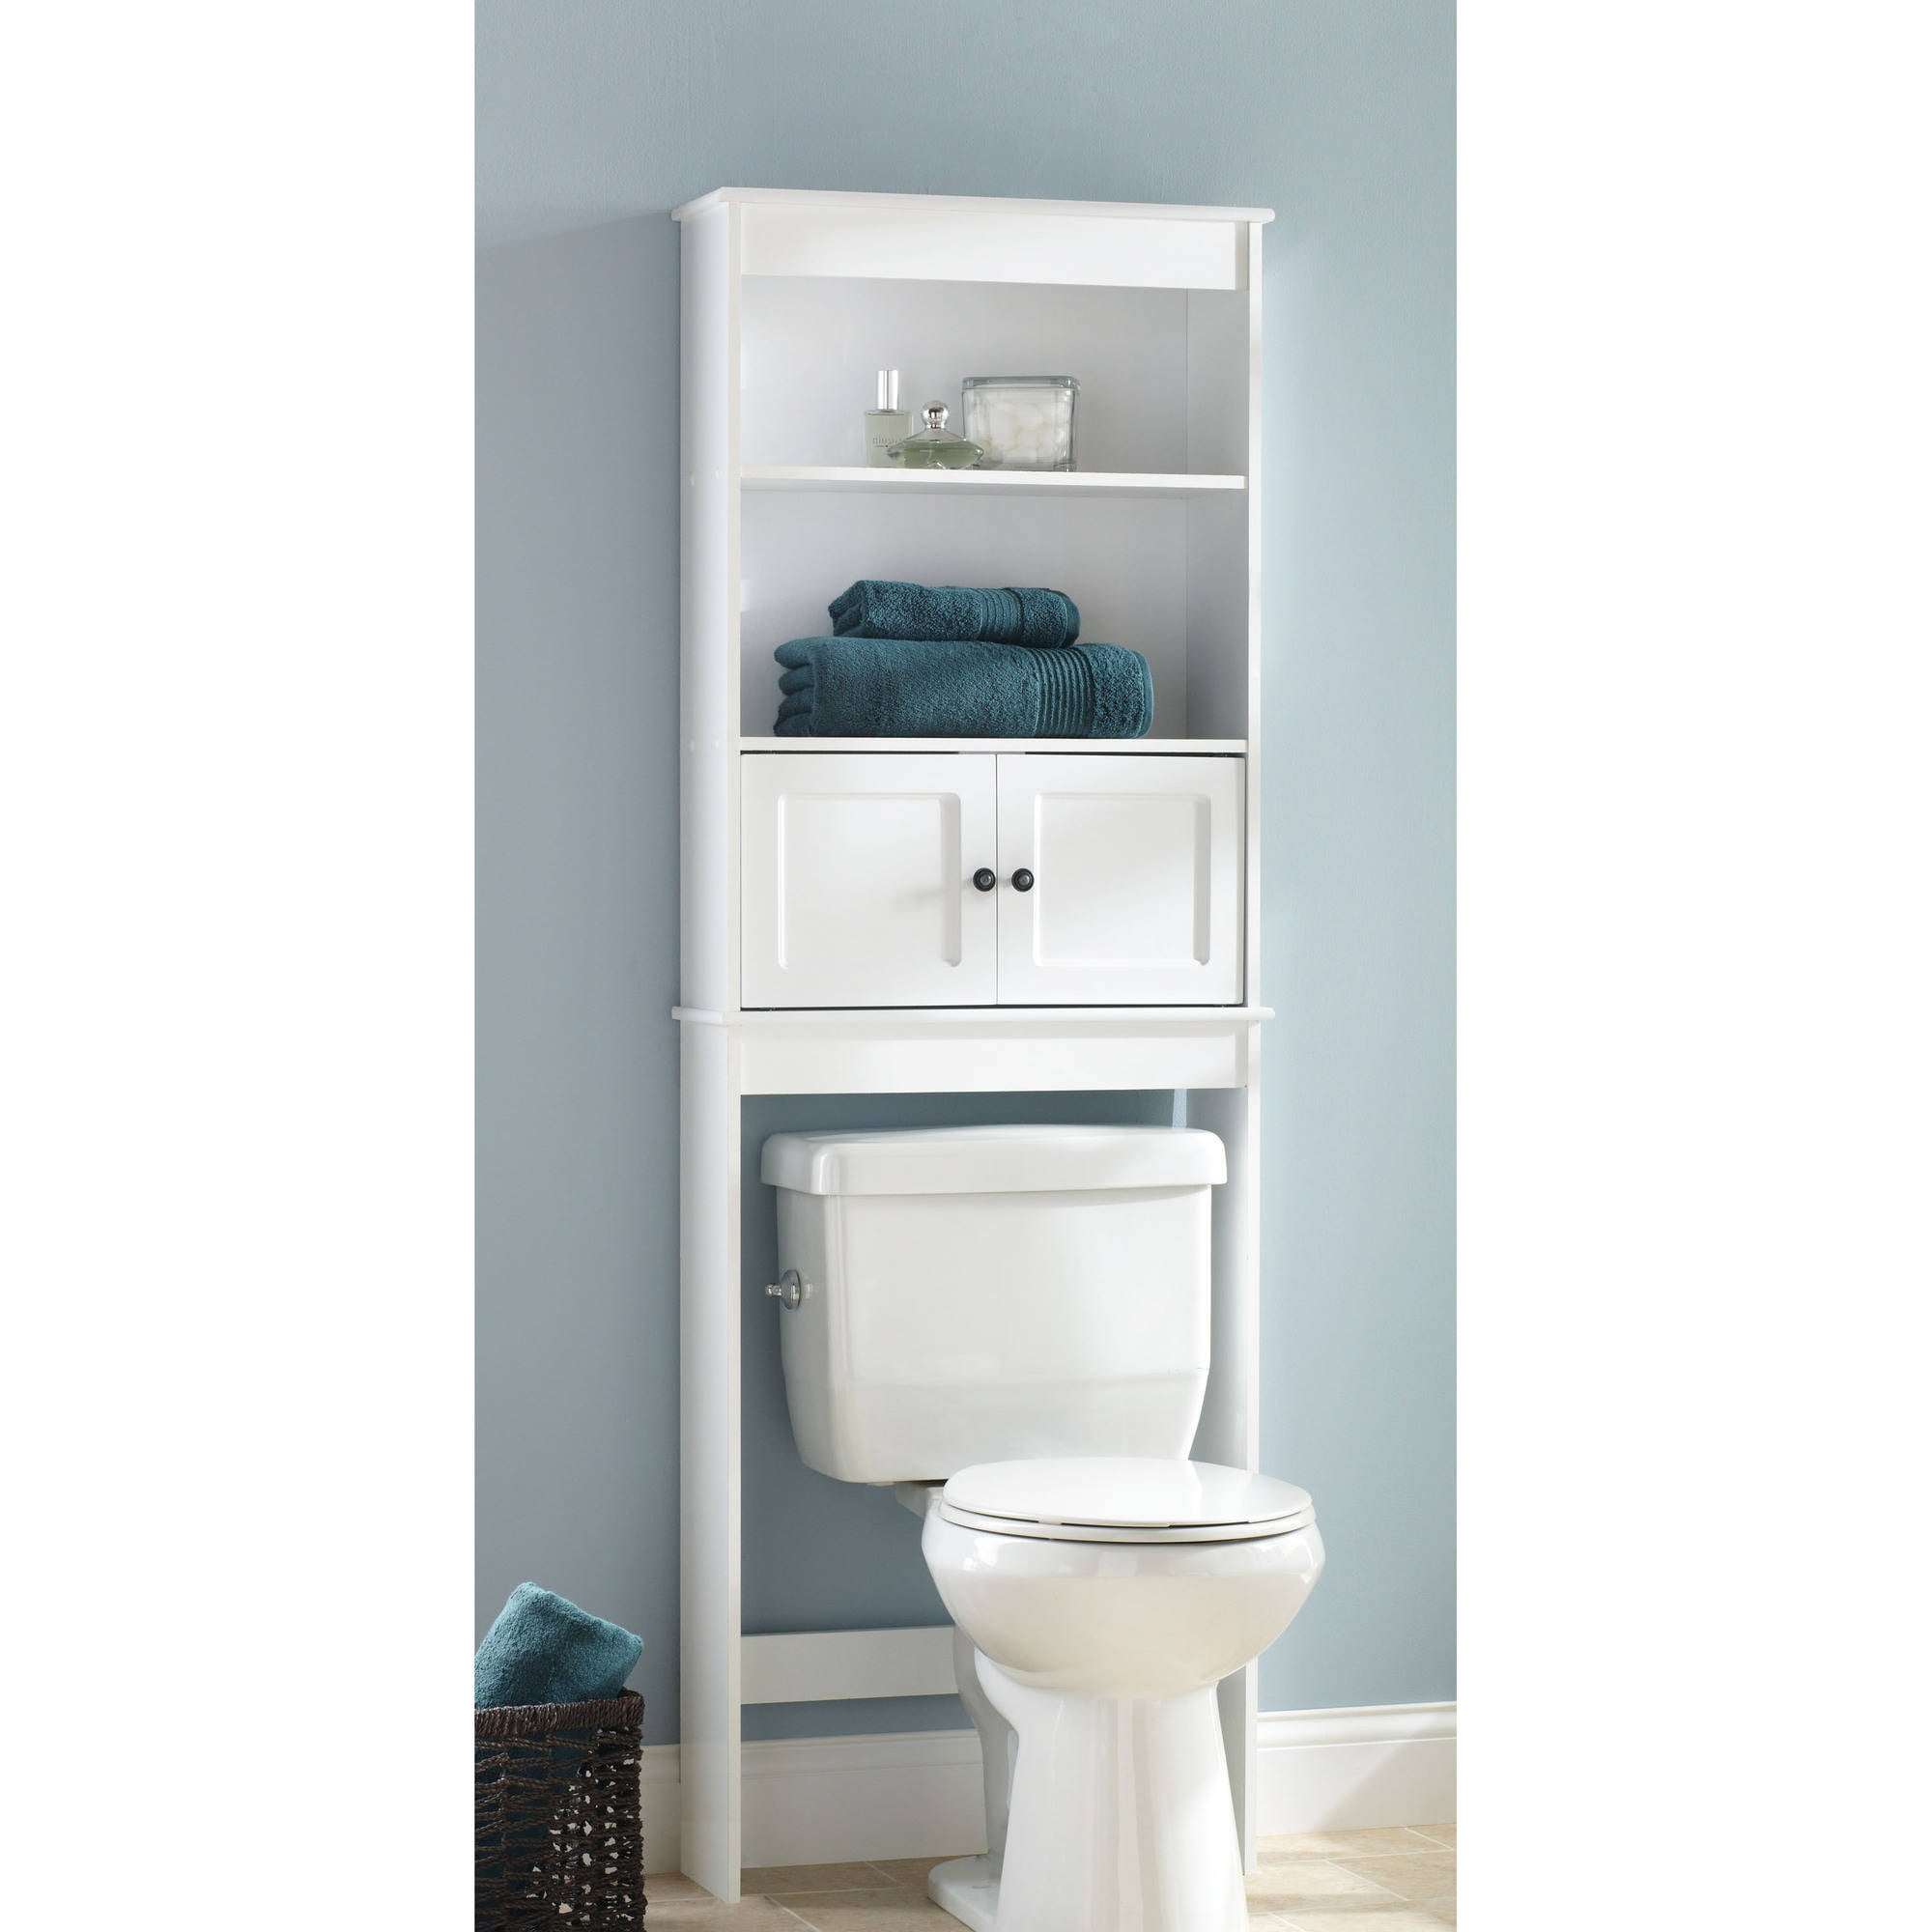 White Bathroom Shelving Unit bedroom design blue design kitchen